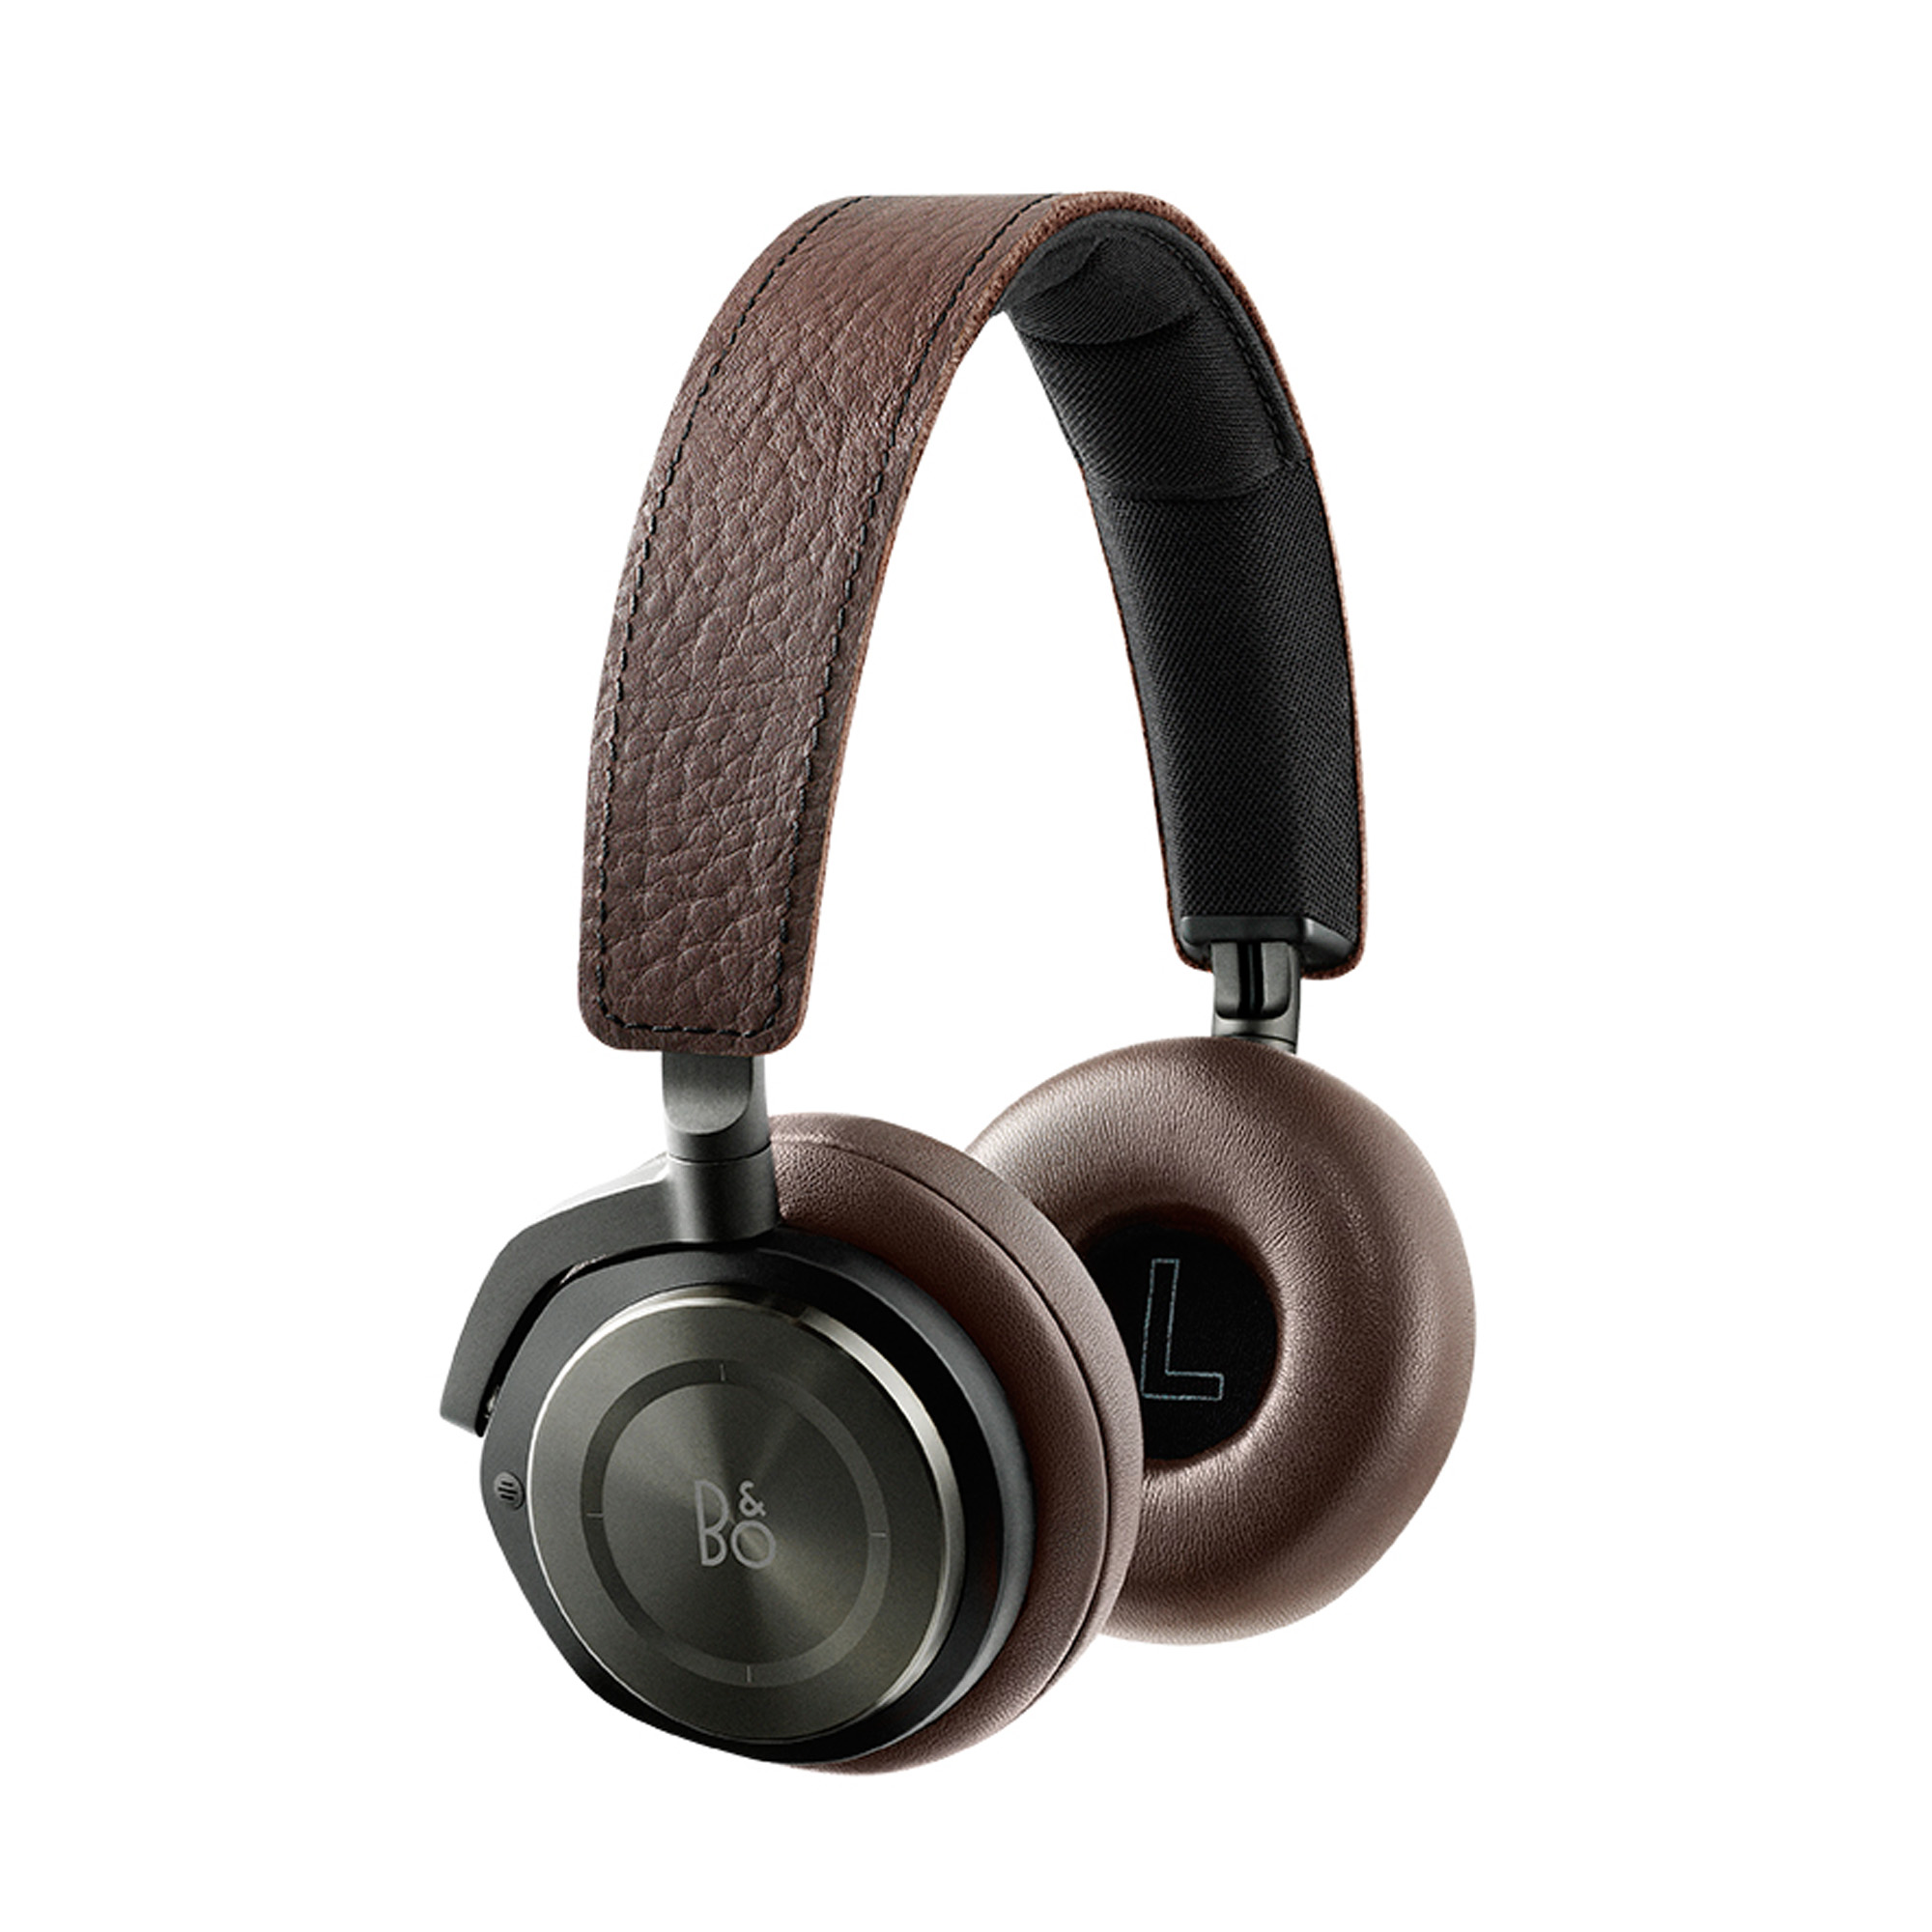 B&O Play รุ่น BeoPlay H8 Gray Hazel